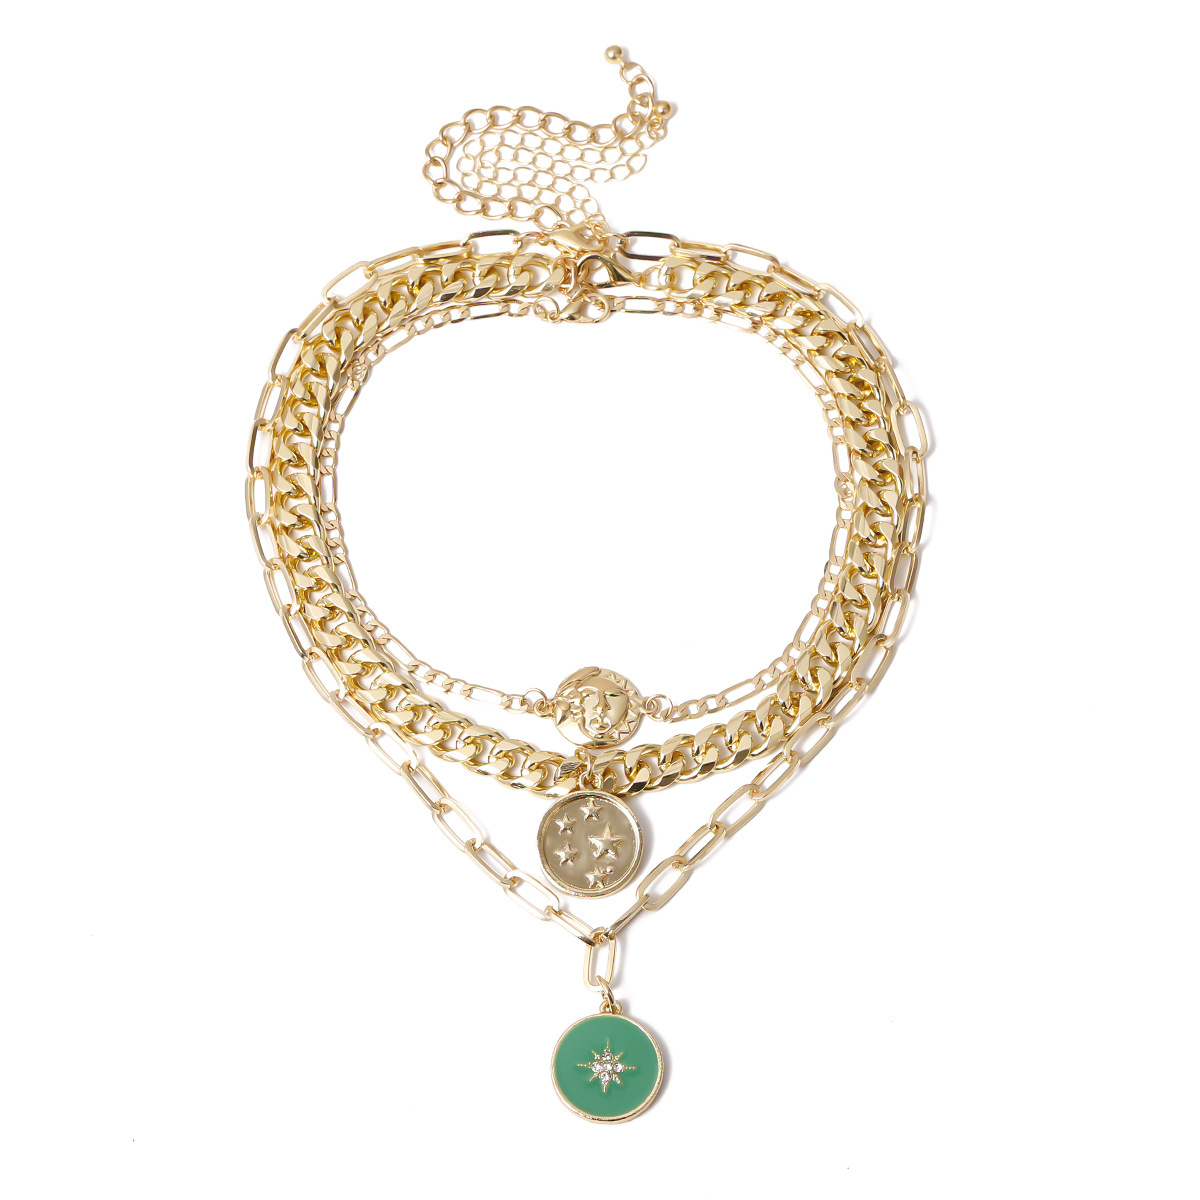 New fashion multilayer microinlaid punk pendant retro sun and moon relief embossed pendant necklace wholesale NHXR210581